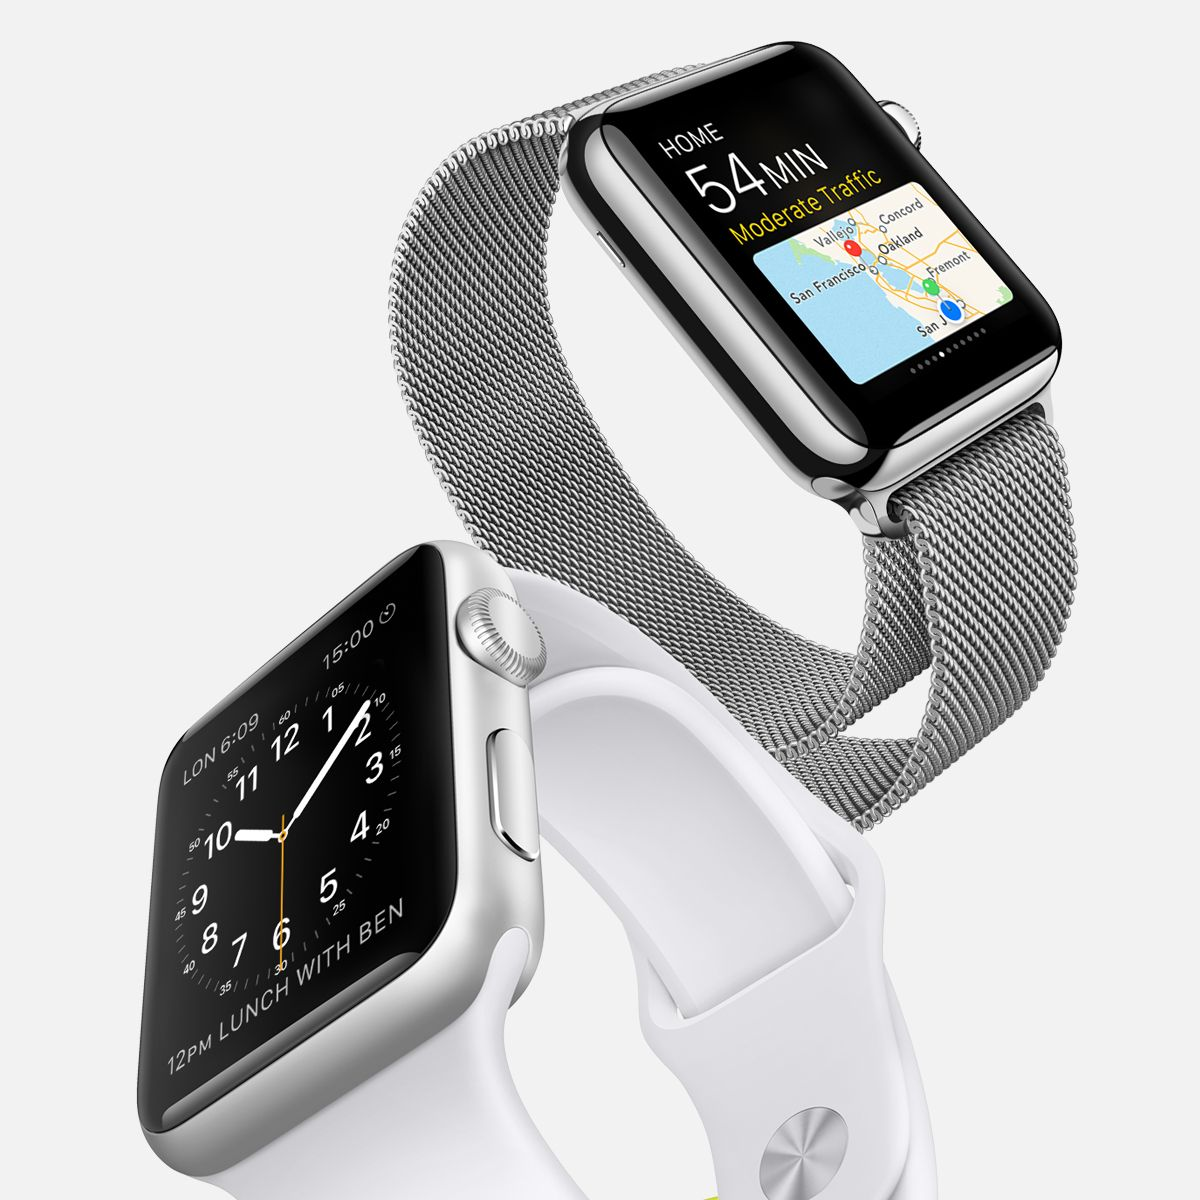 Apple Watch is first and foremost an incredibly accurate